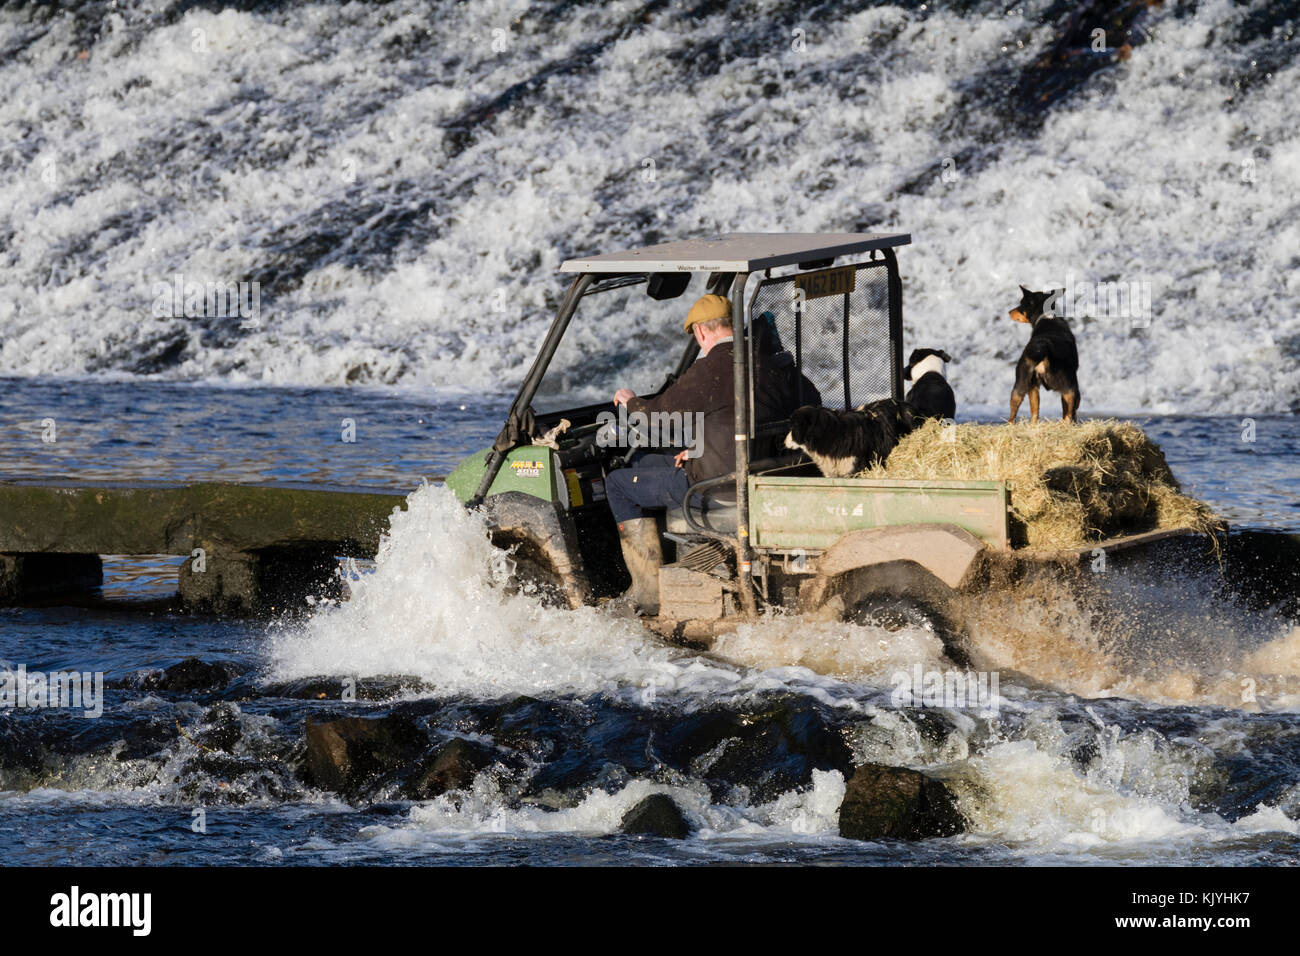 kawasaki-mule-4010-4wd-all-terrain-vehicle-crosses-the-tidal-ford-KJYHK7.jpg